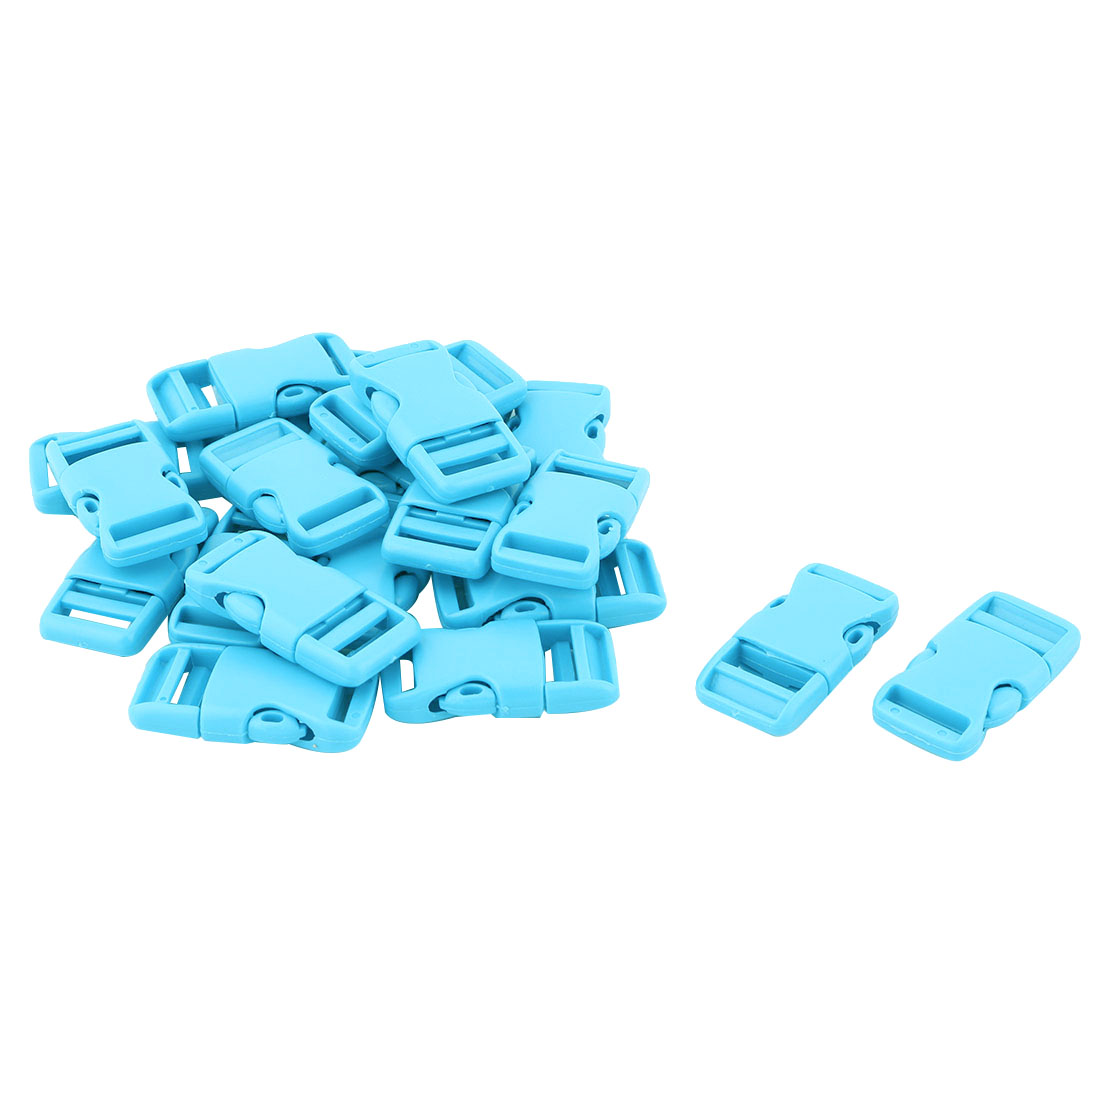 Backpack Bag Plastic Strap Belt Adjustive Connecting Quick Release Buckle Sky Blue 20 Pcs